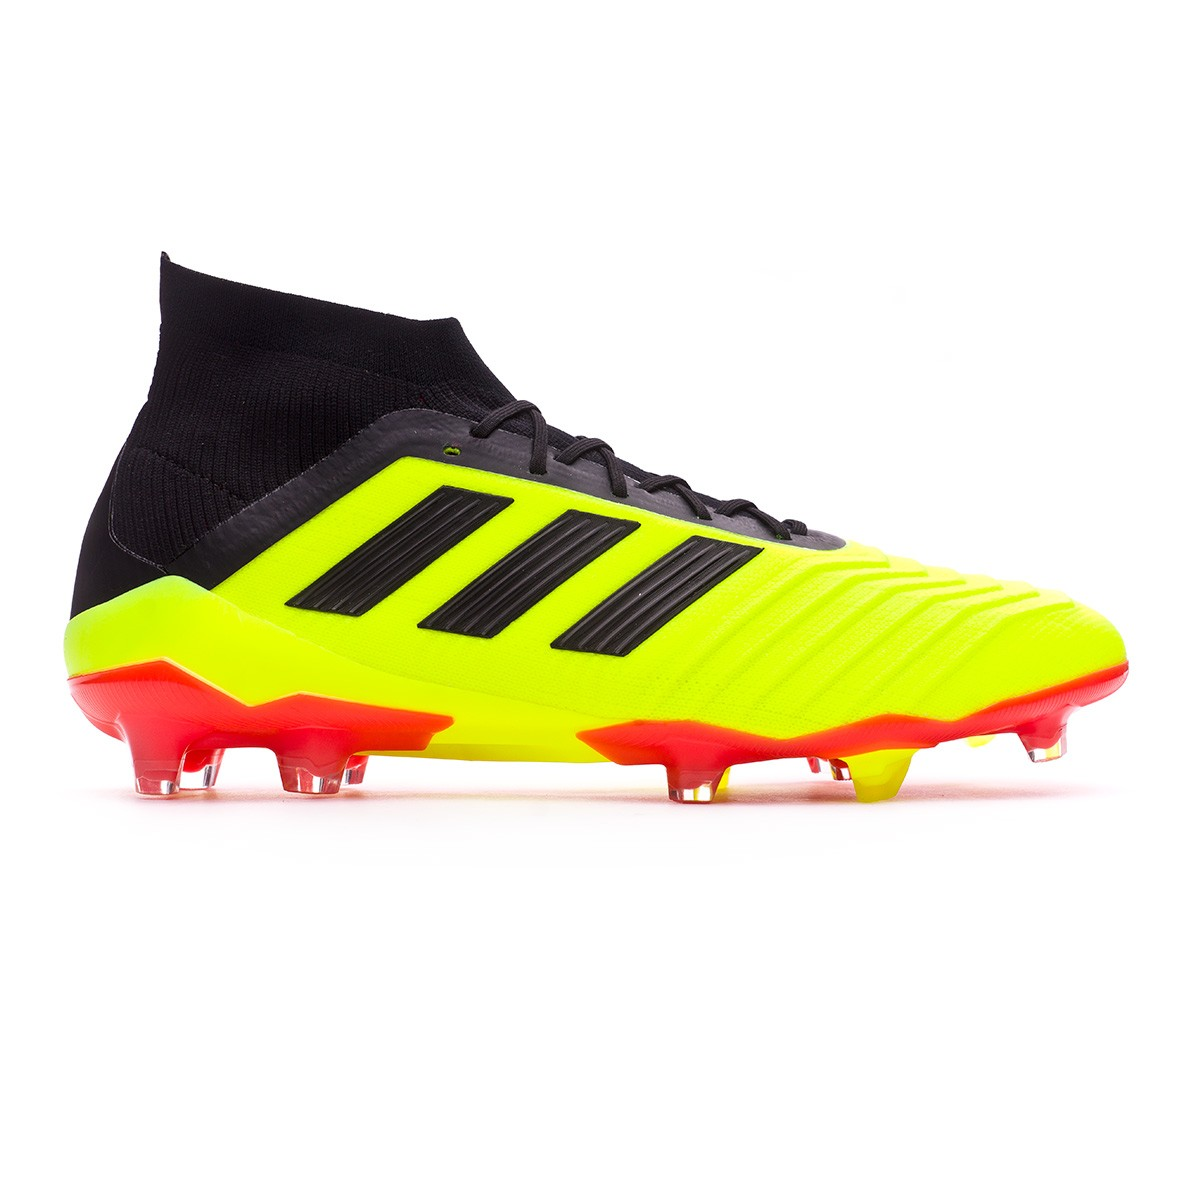 best loved c7b0c ed302 Bota de fútbol adidas Predator 18.1 FG Solar yellow-Black-Solar red -  Tienda de fútbol Fútbol Emotion